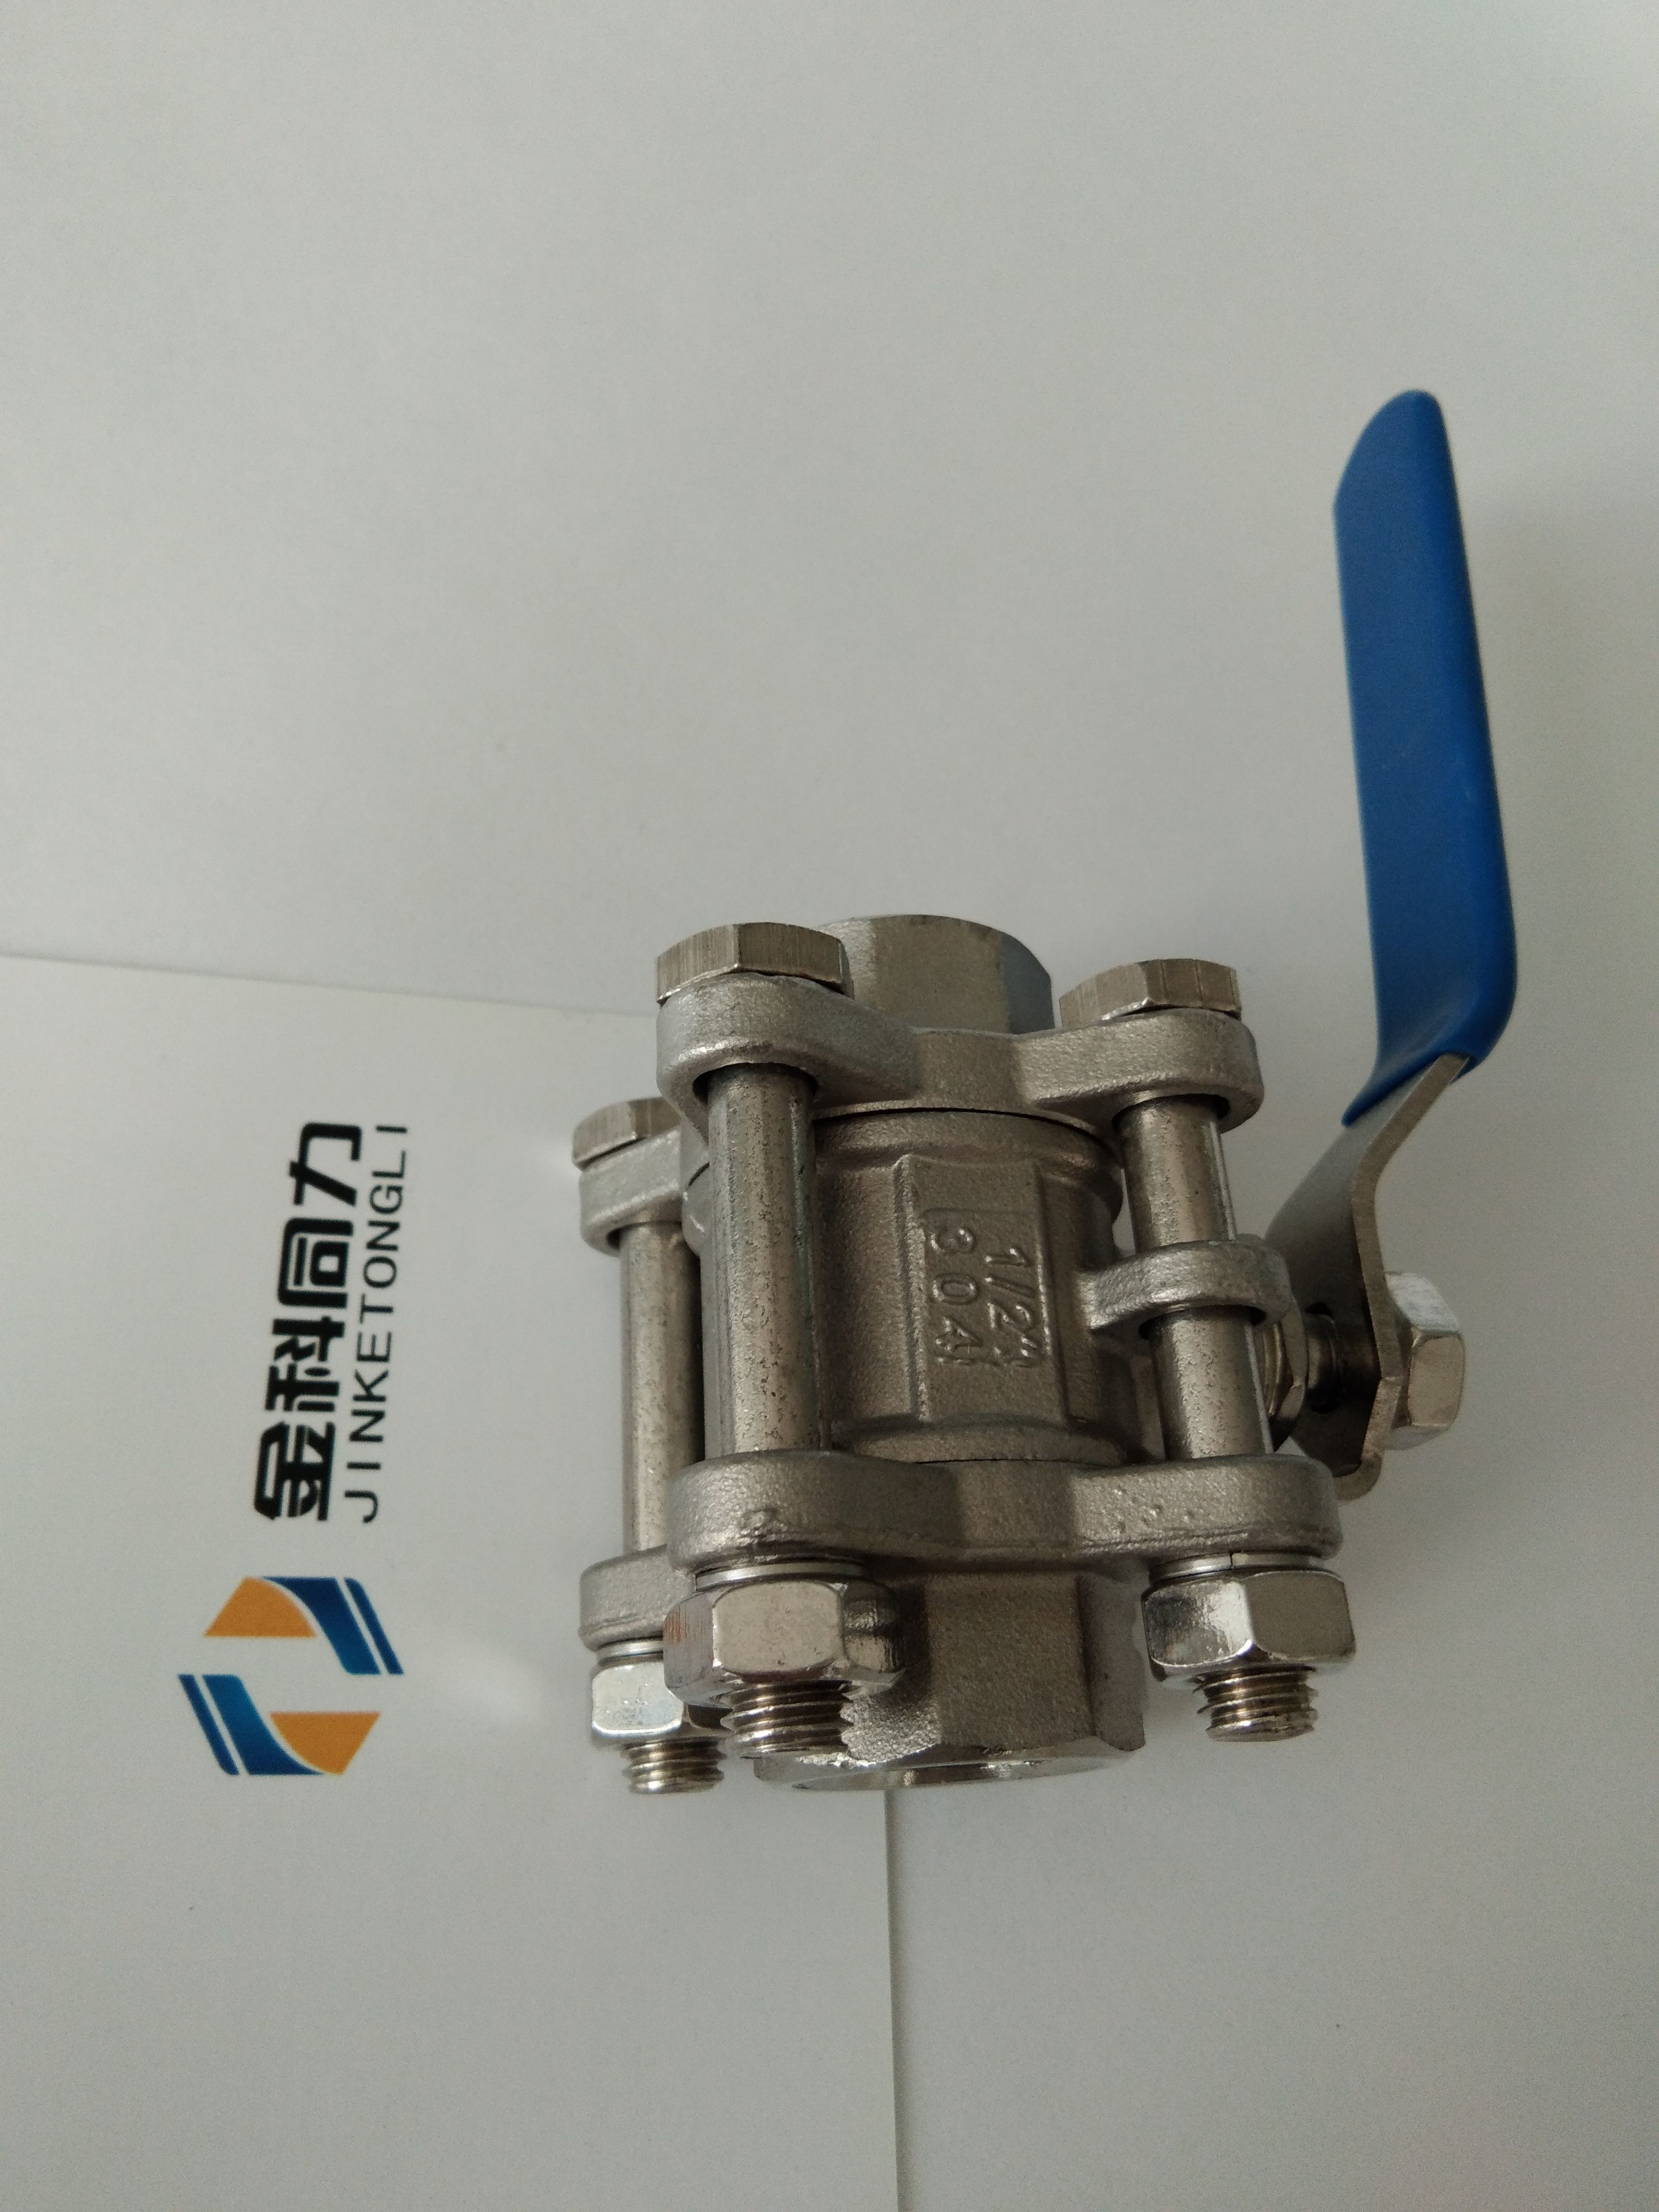 3 piece ball valve produced by hebei tongli automatic